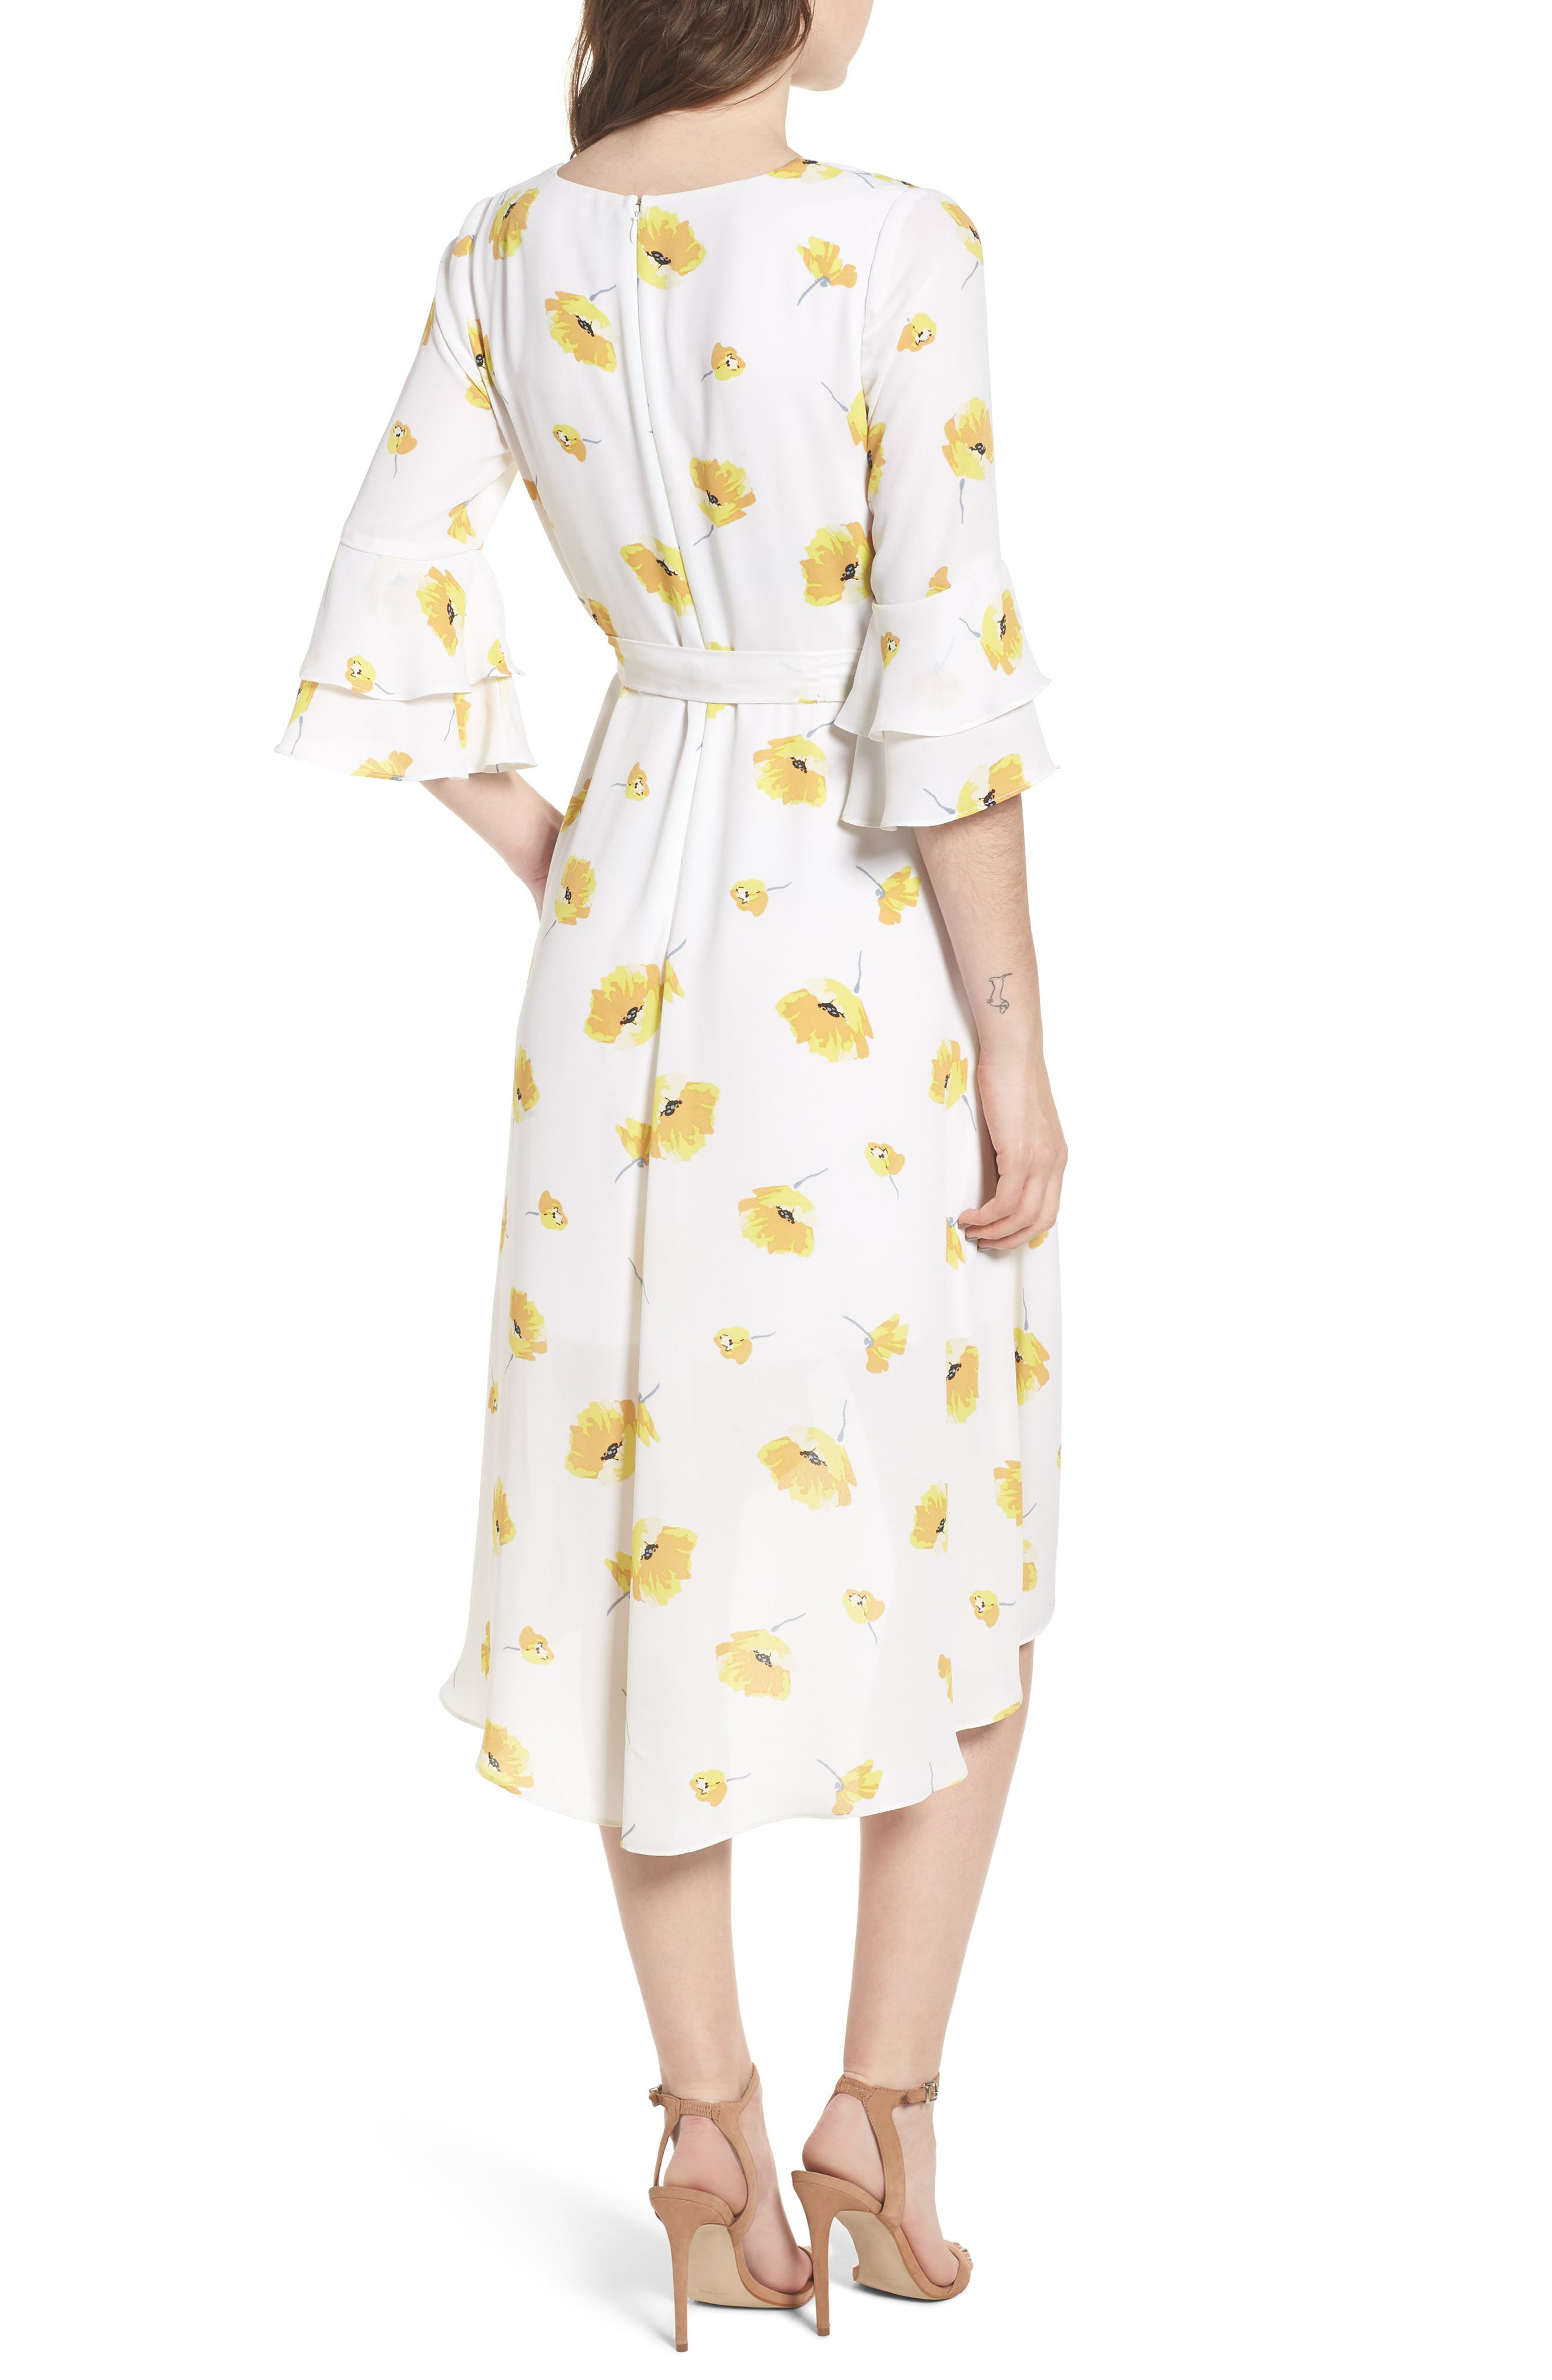 Floral Faux Wrap Dress,                             Alternate thumbnail 2, color,                             Ivory Gold Floral Print